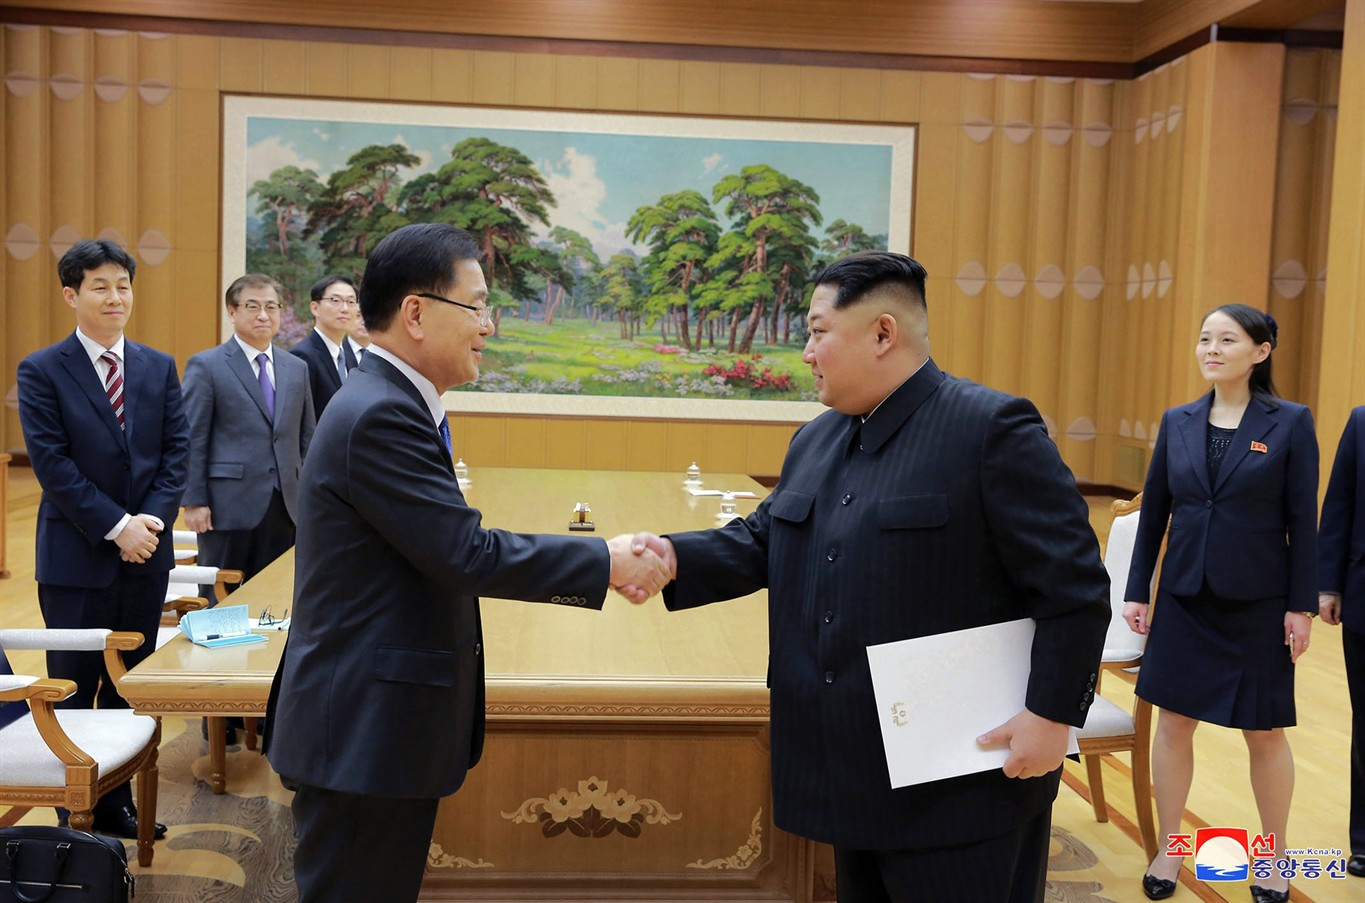 Seoul aims for more talks about talks with North Korea